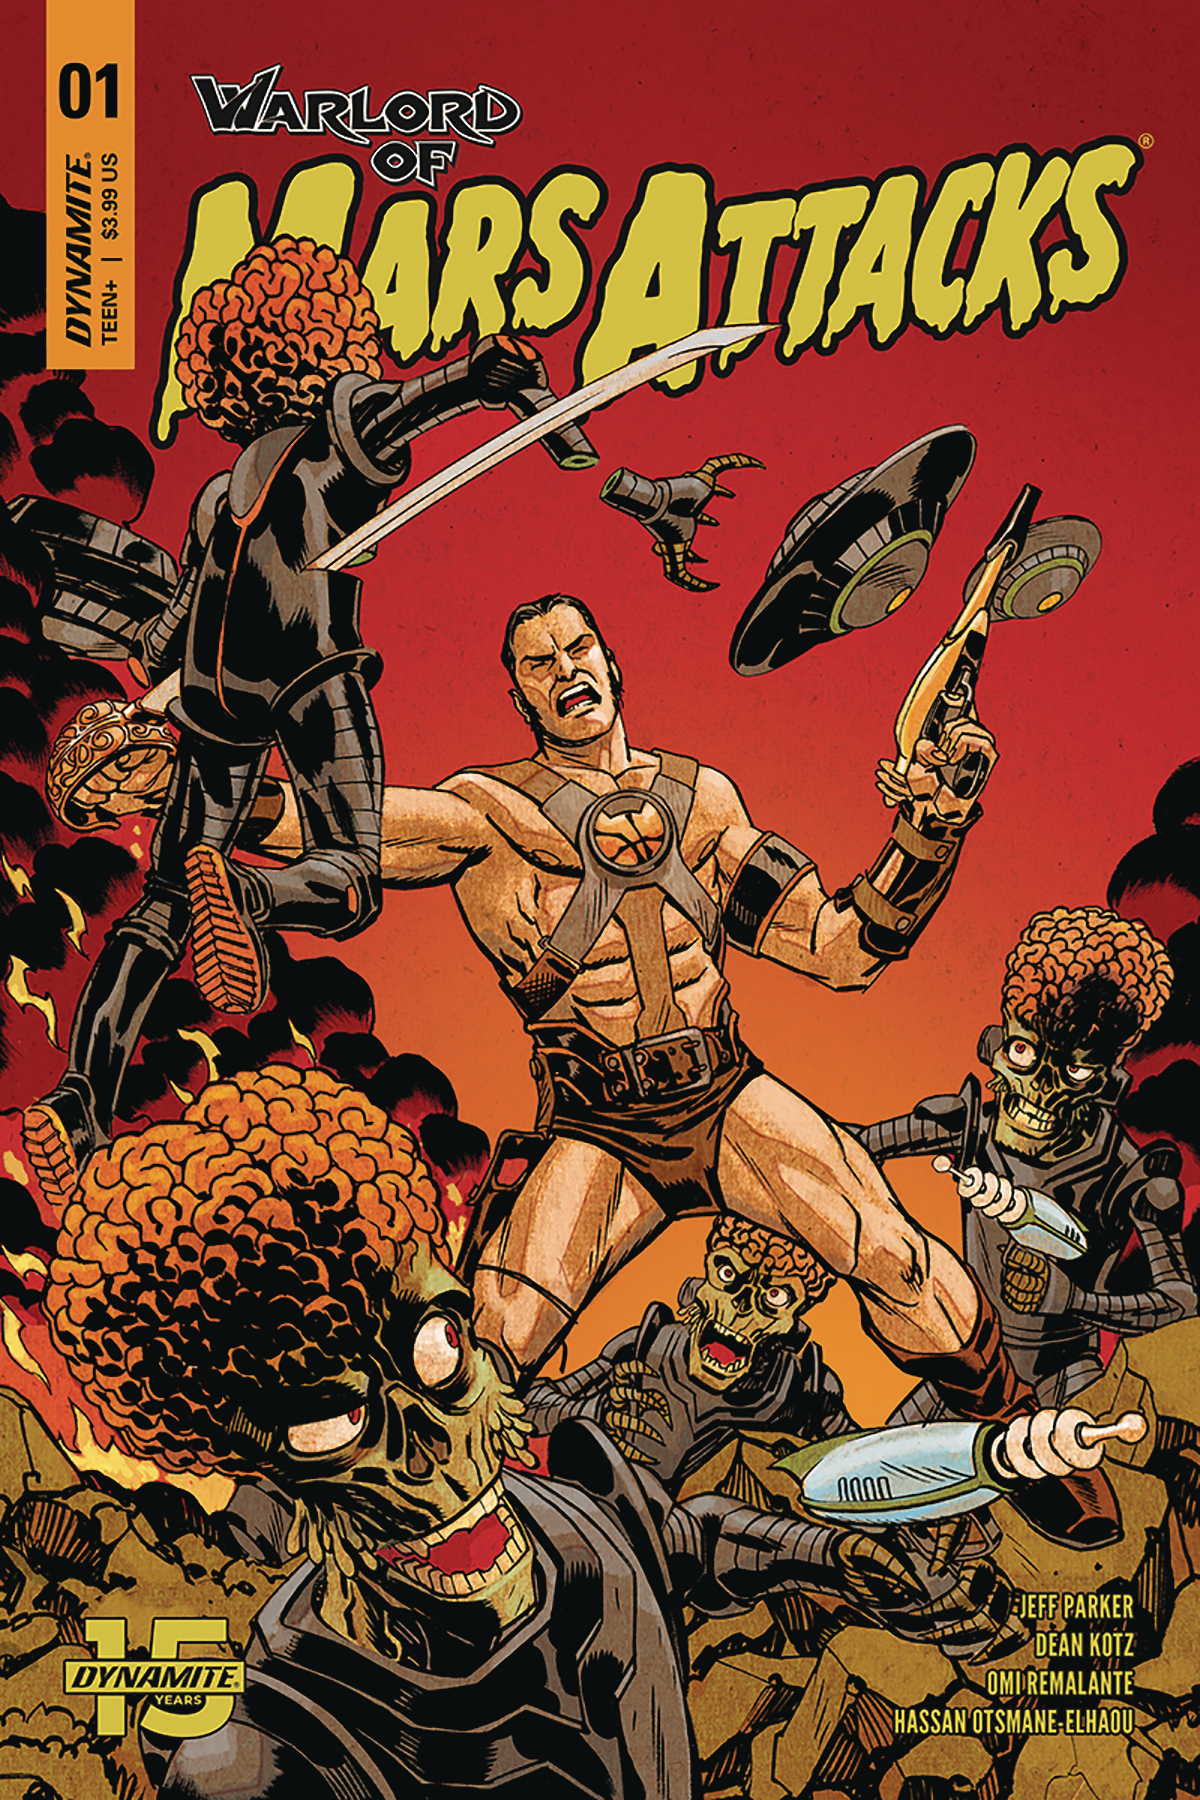 WARLORD OF MARS ATTACKS #1 CVR A JOHNSON